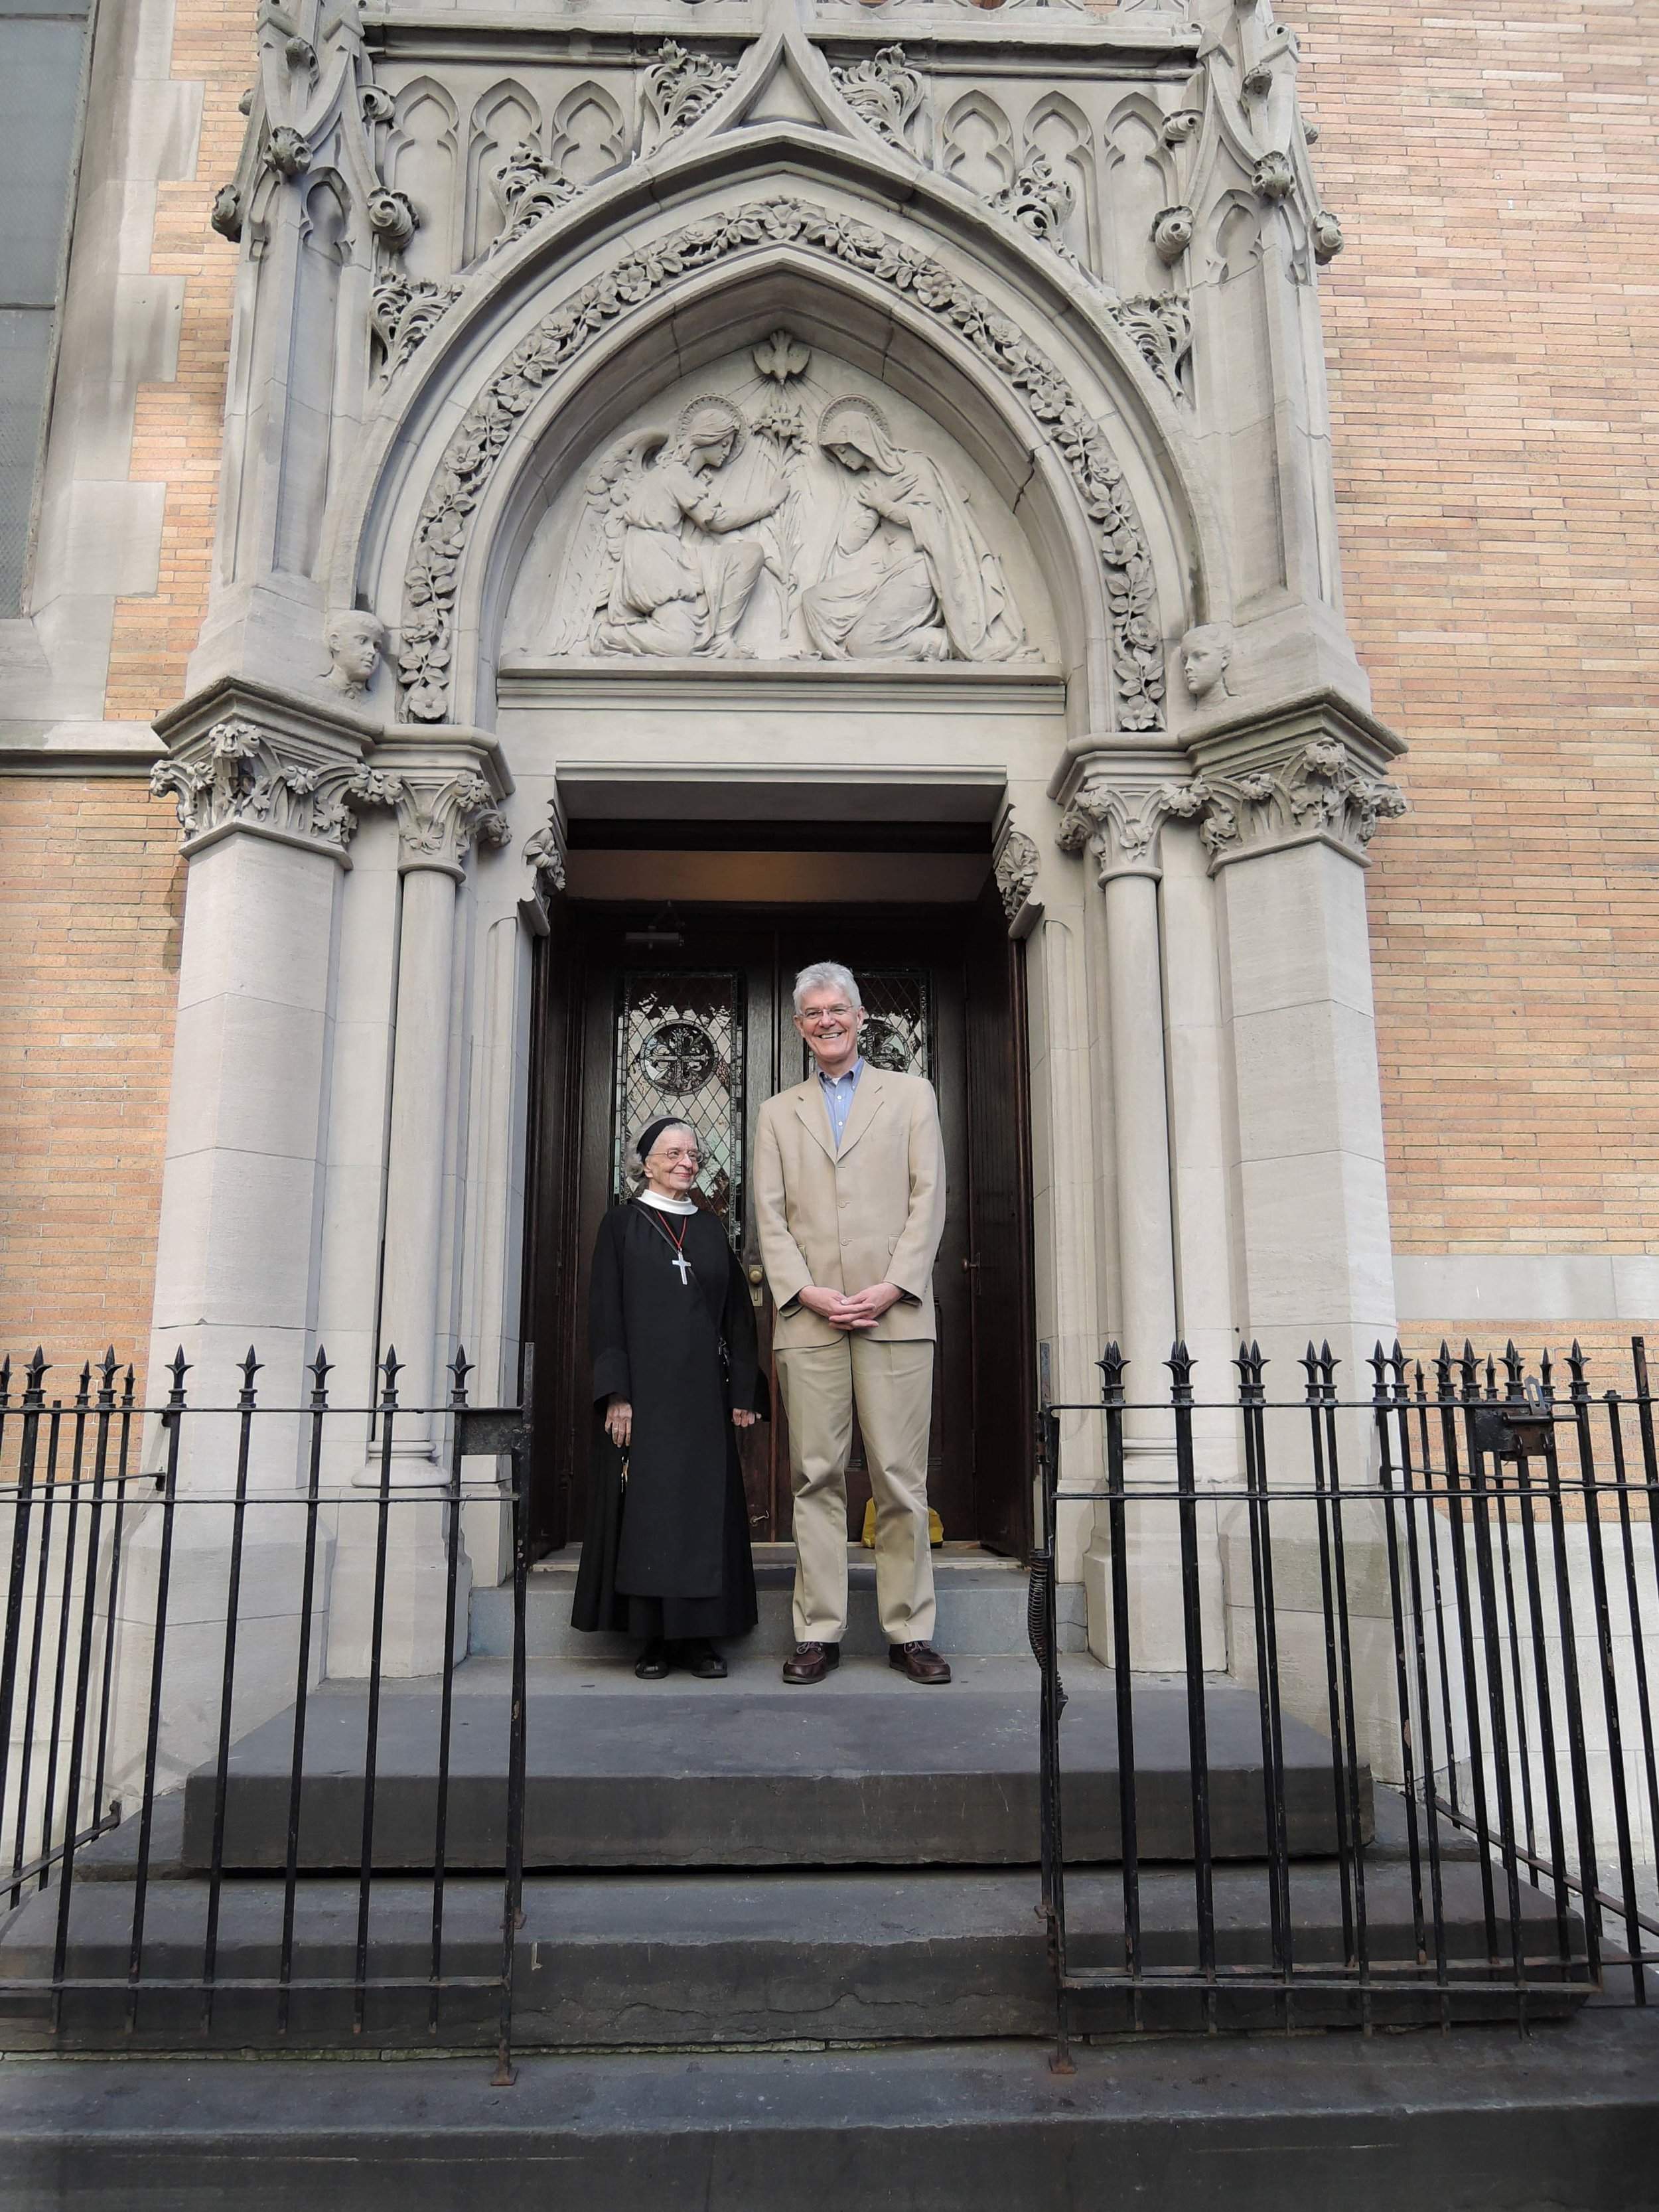 Sister Laura Katharine, CSJB with The Very Reverend Lister Tonge, Dean of Monmouth.